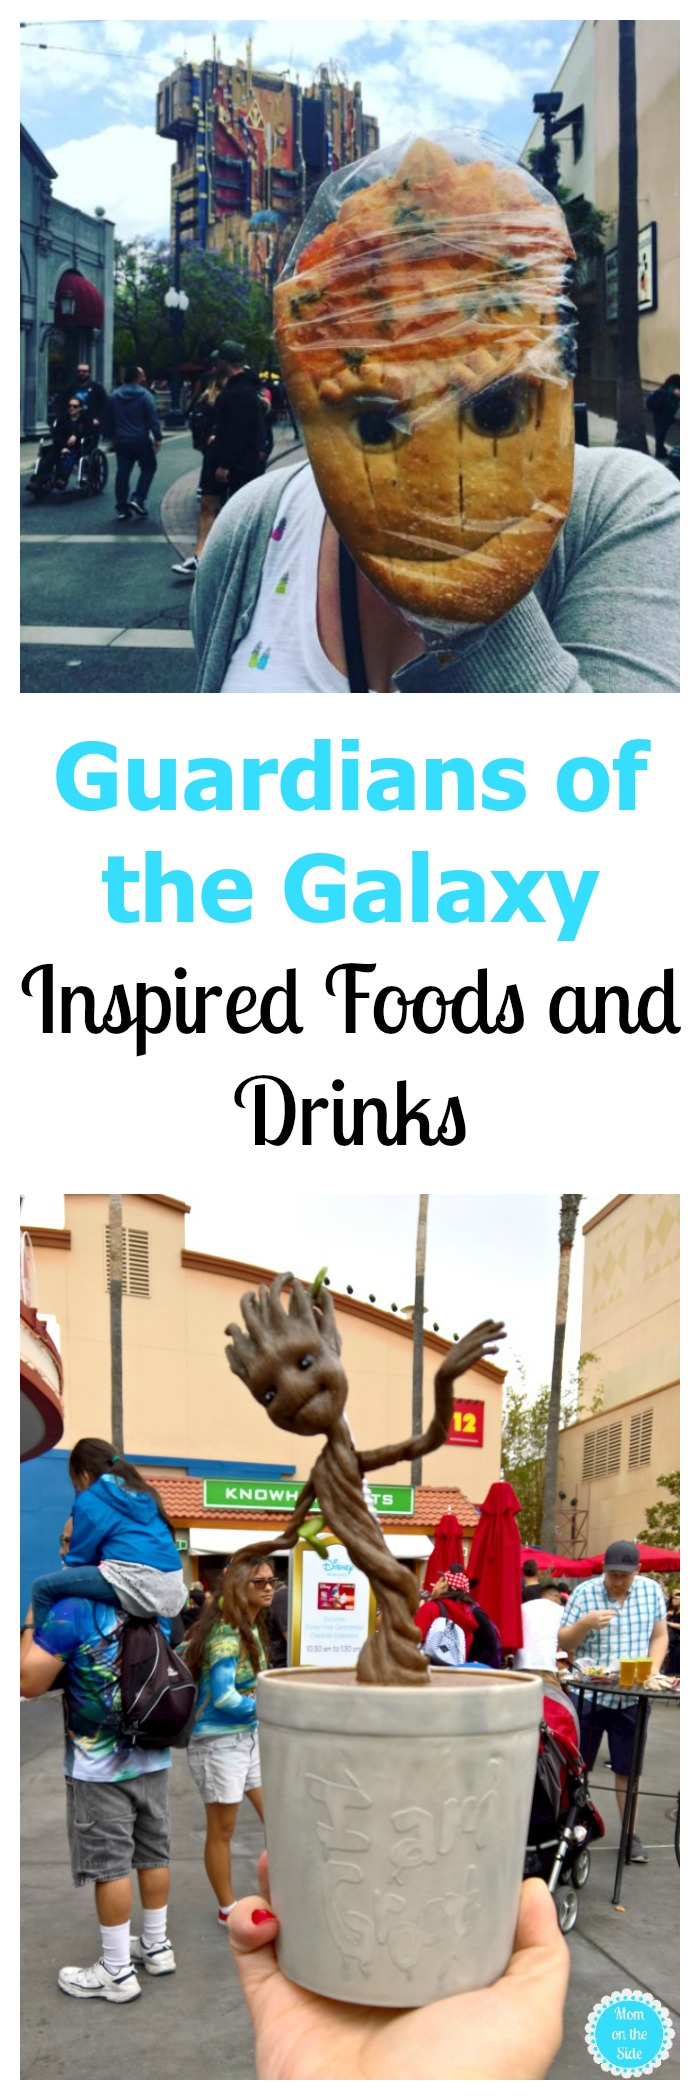 Guardians of the Galaxy Themed Food and Drinks at Summer of Heroes